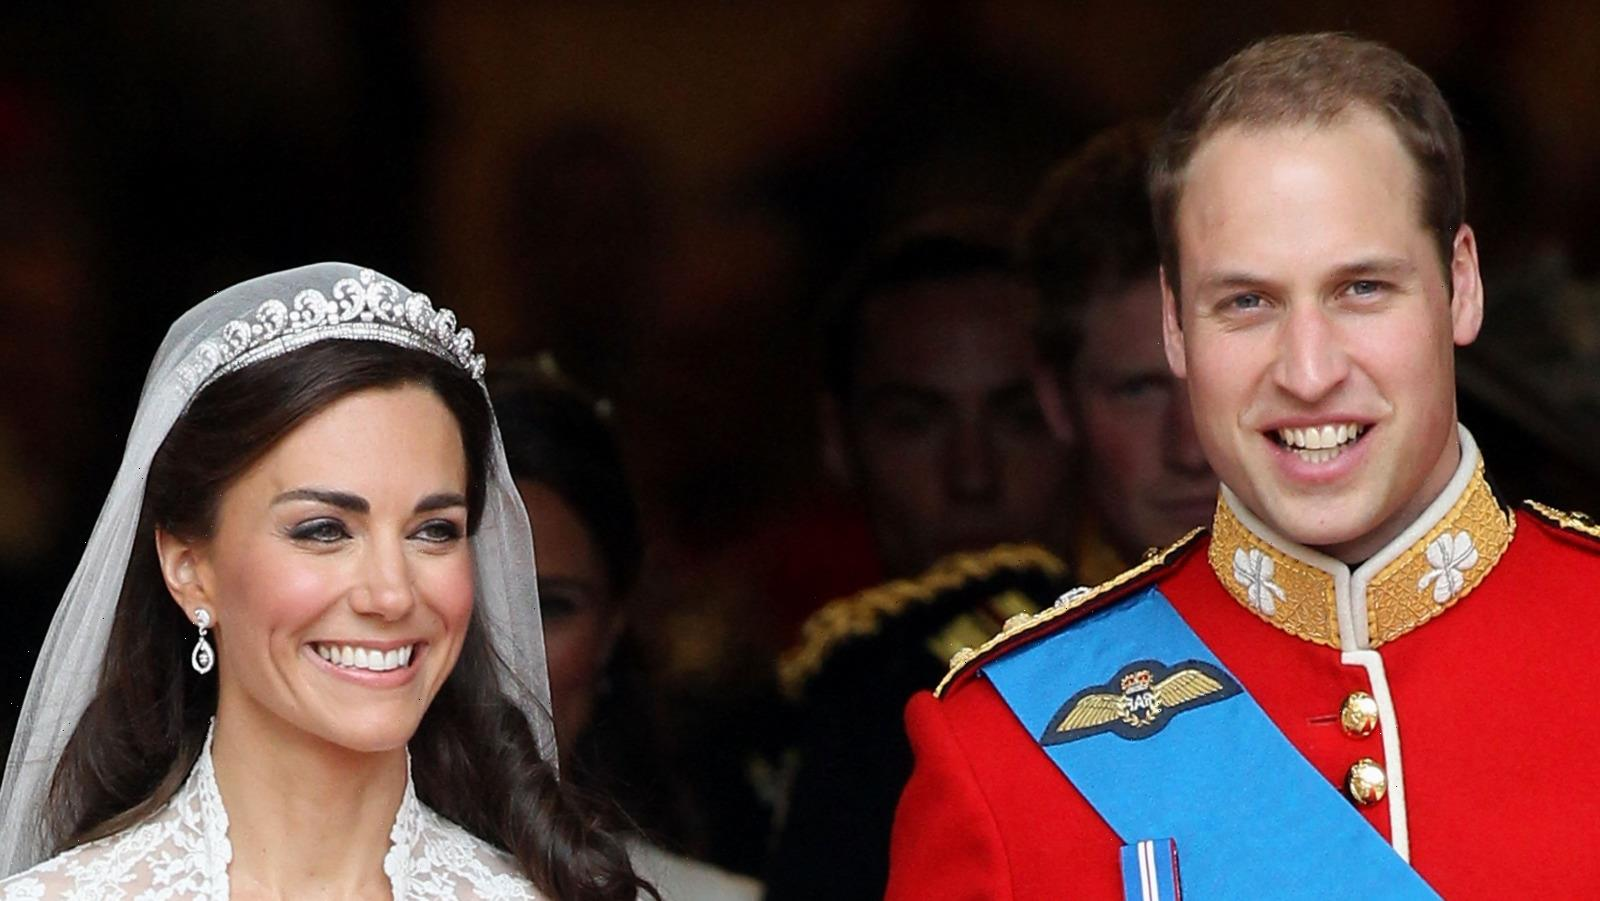 Body Language Expert Noticed This About William & Kate's Anniversary Video – Exclusive